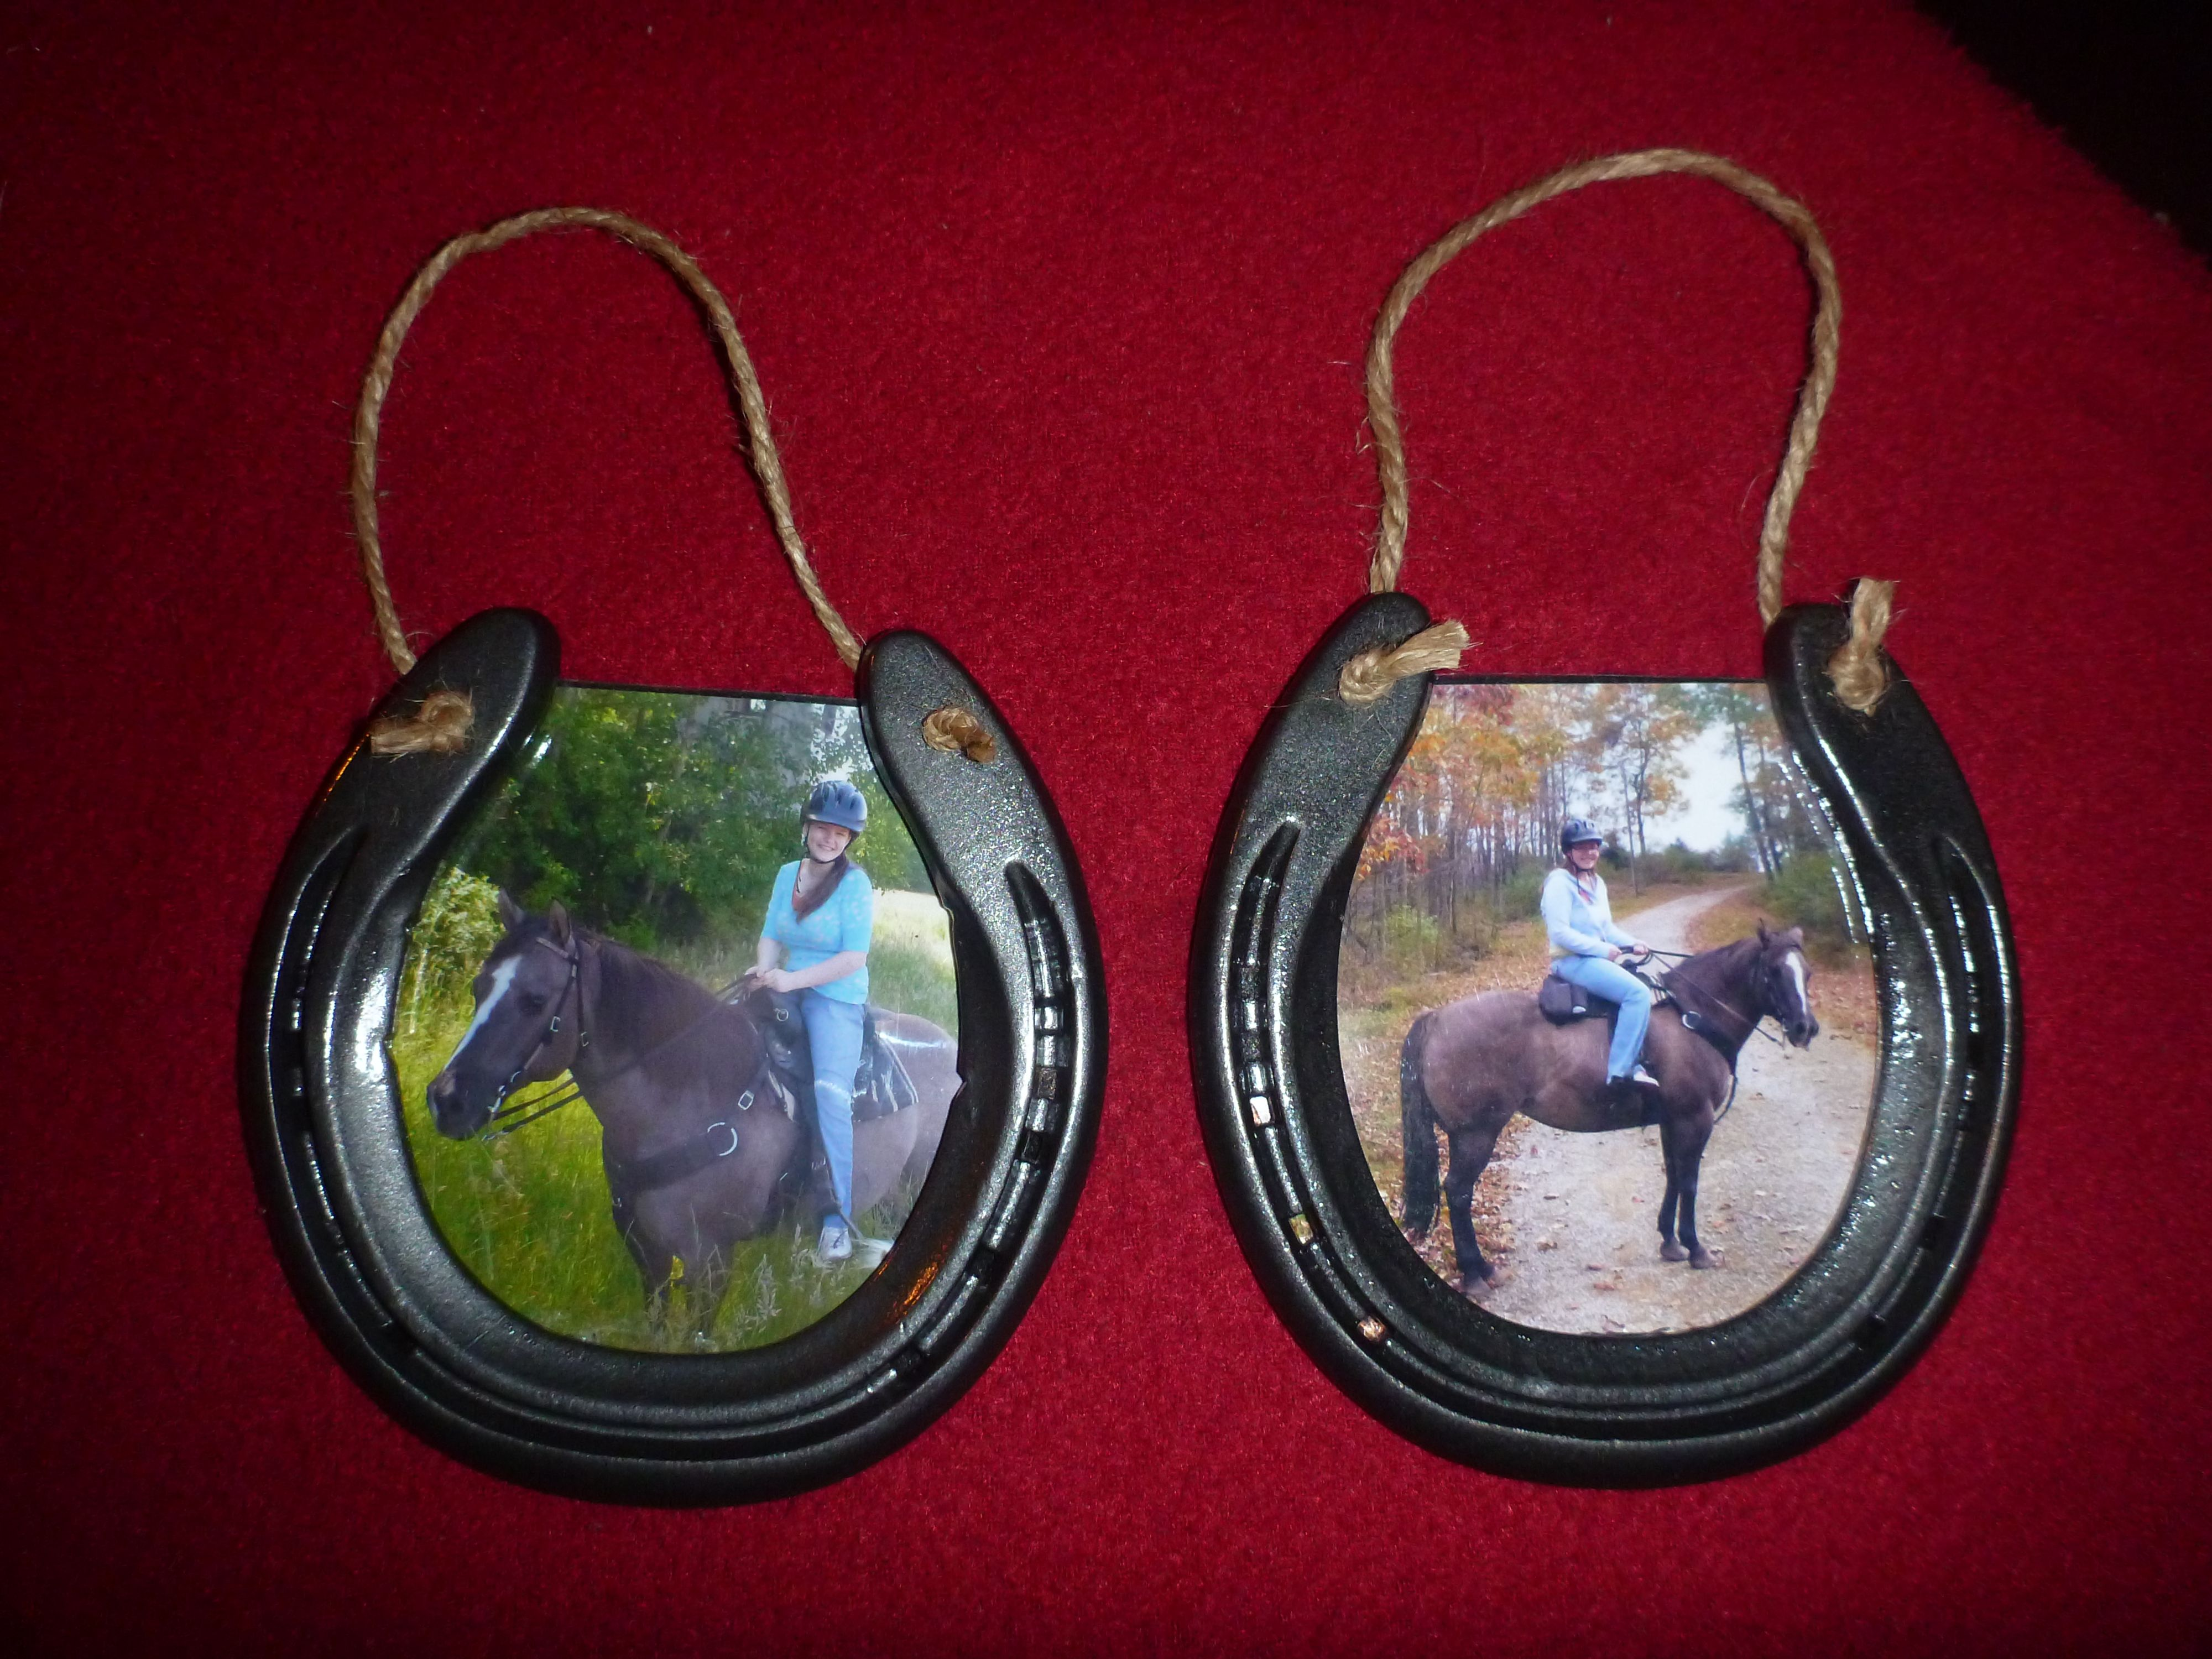 Horseshoe picture frames | Crafts | Pinterest | Horse shoes ...